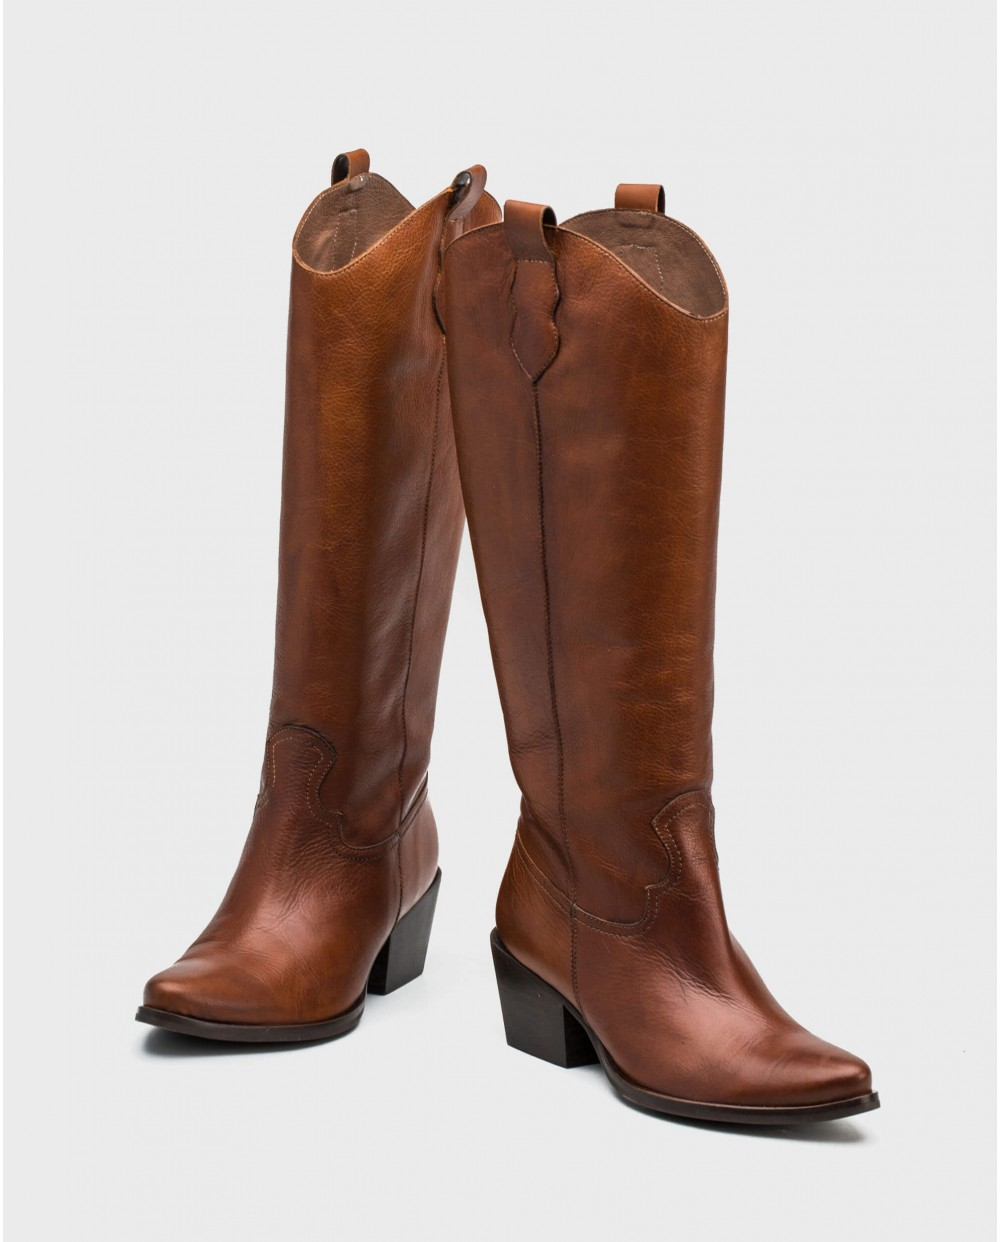 Wonders-Boots-Engraved leather cowboy boot